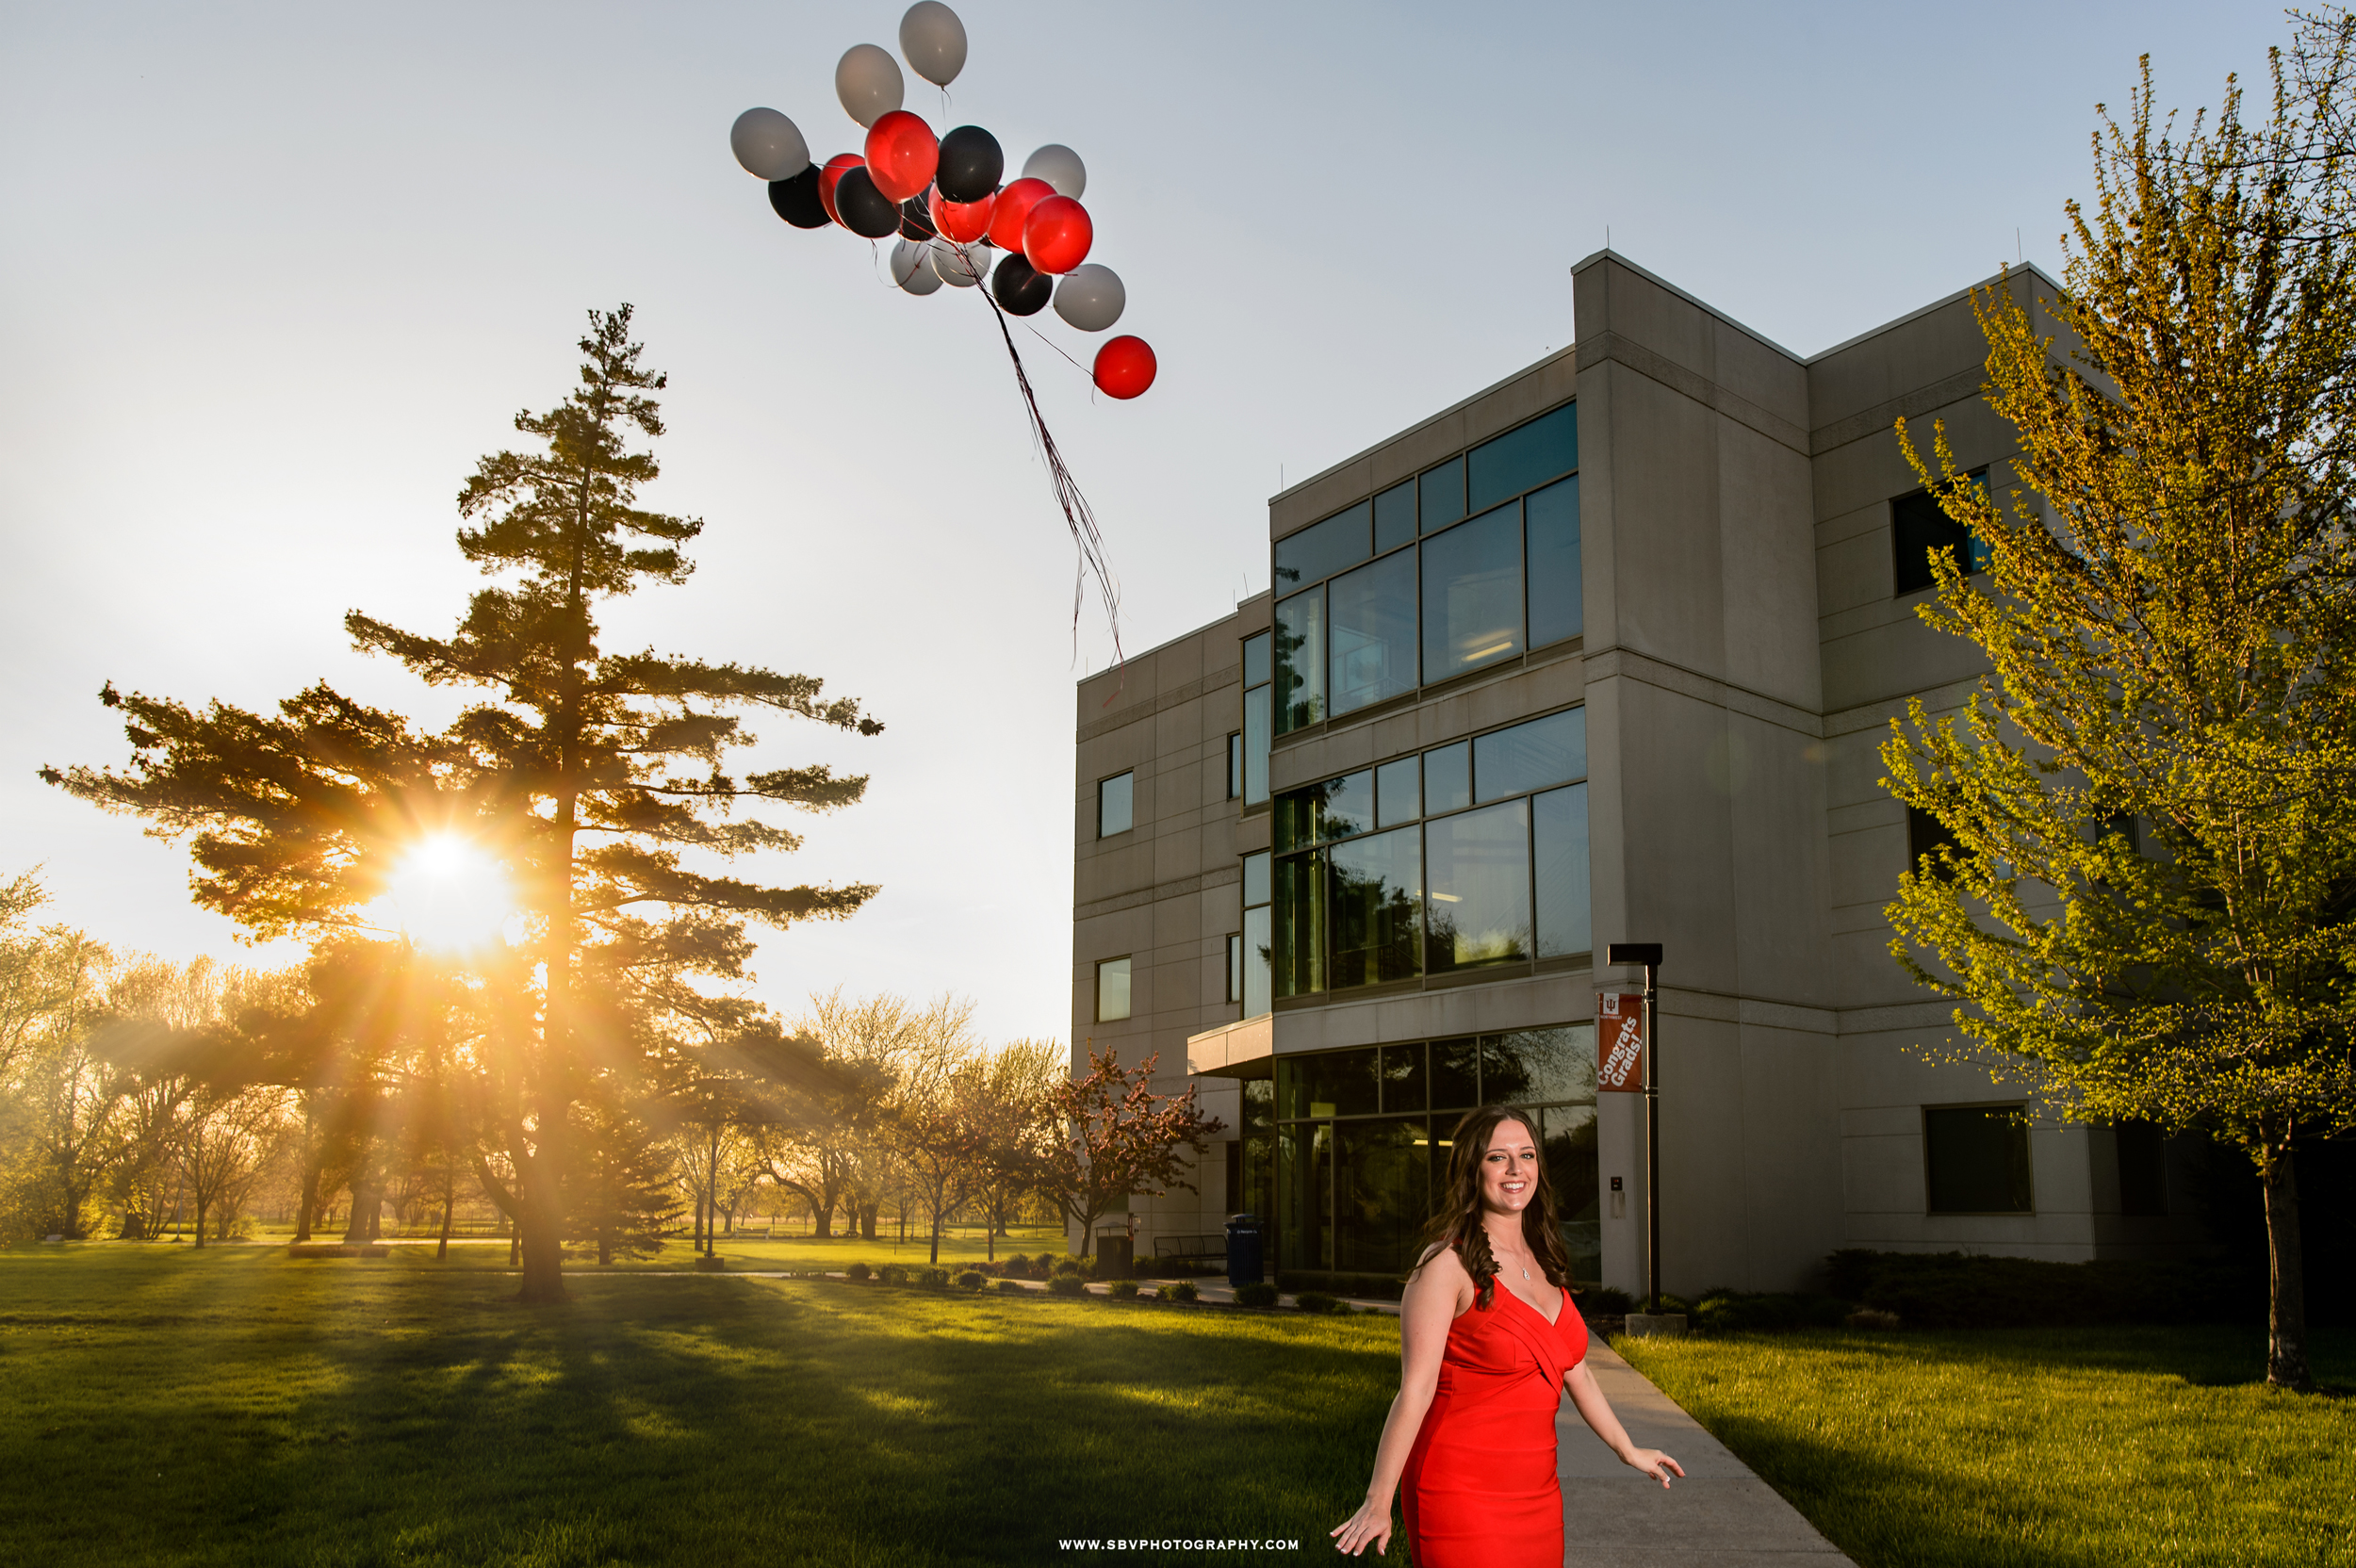 Balloons are released in celebration by an Indiana University graduate.